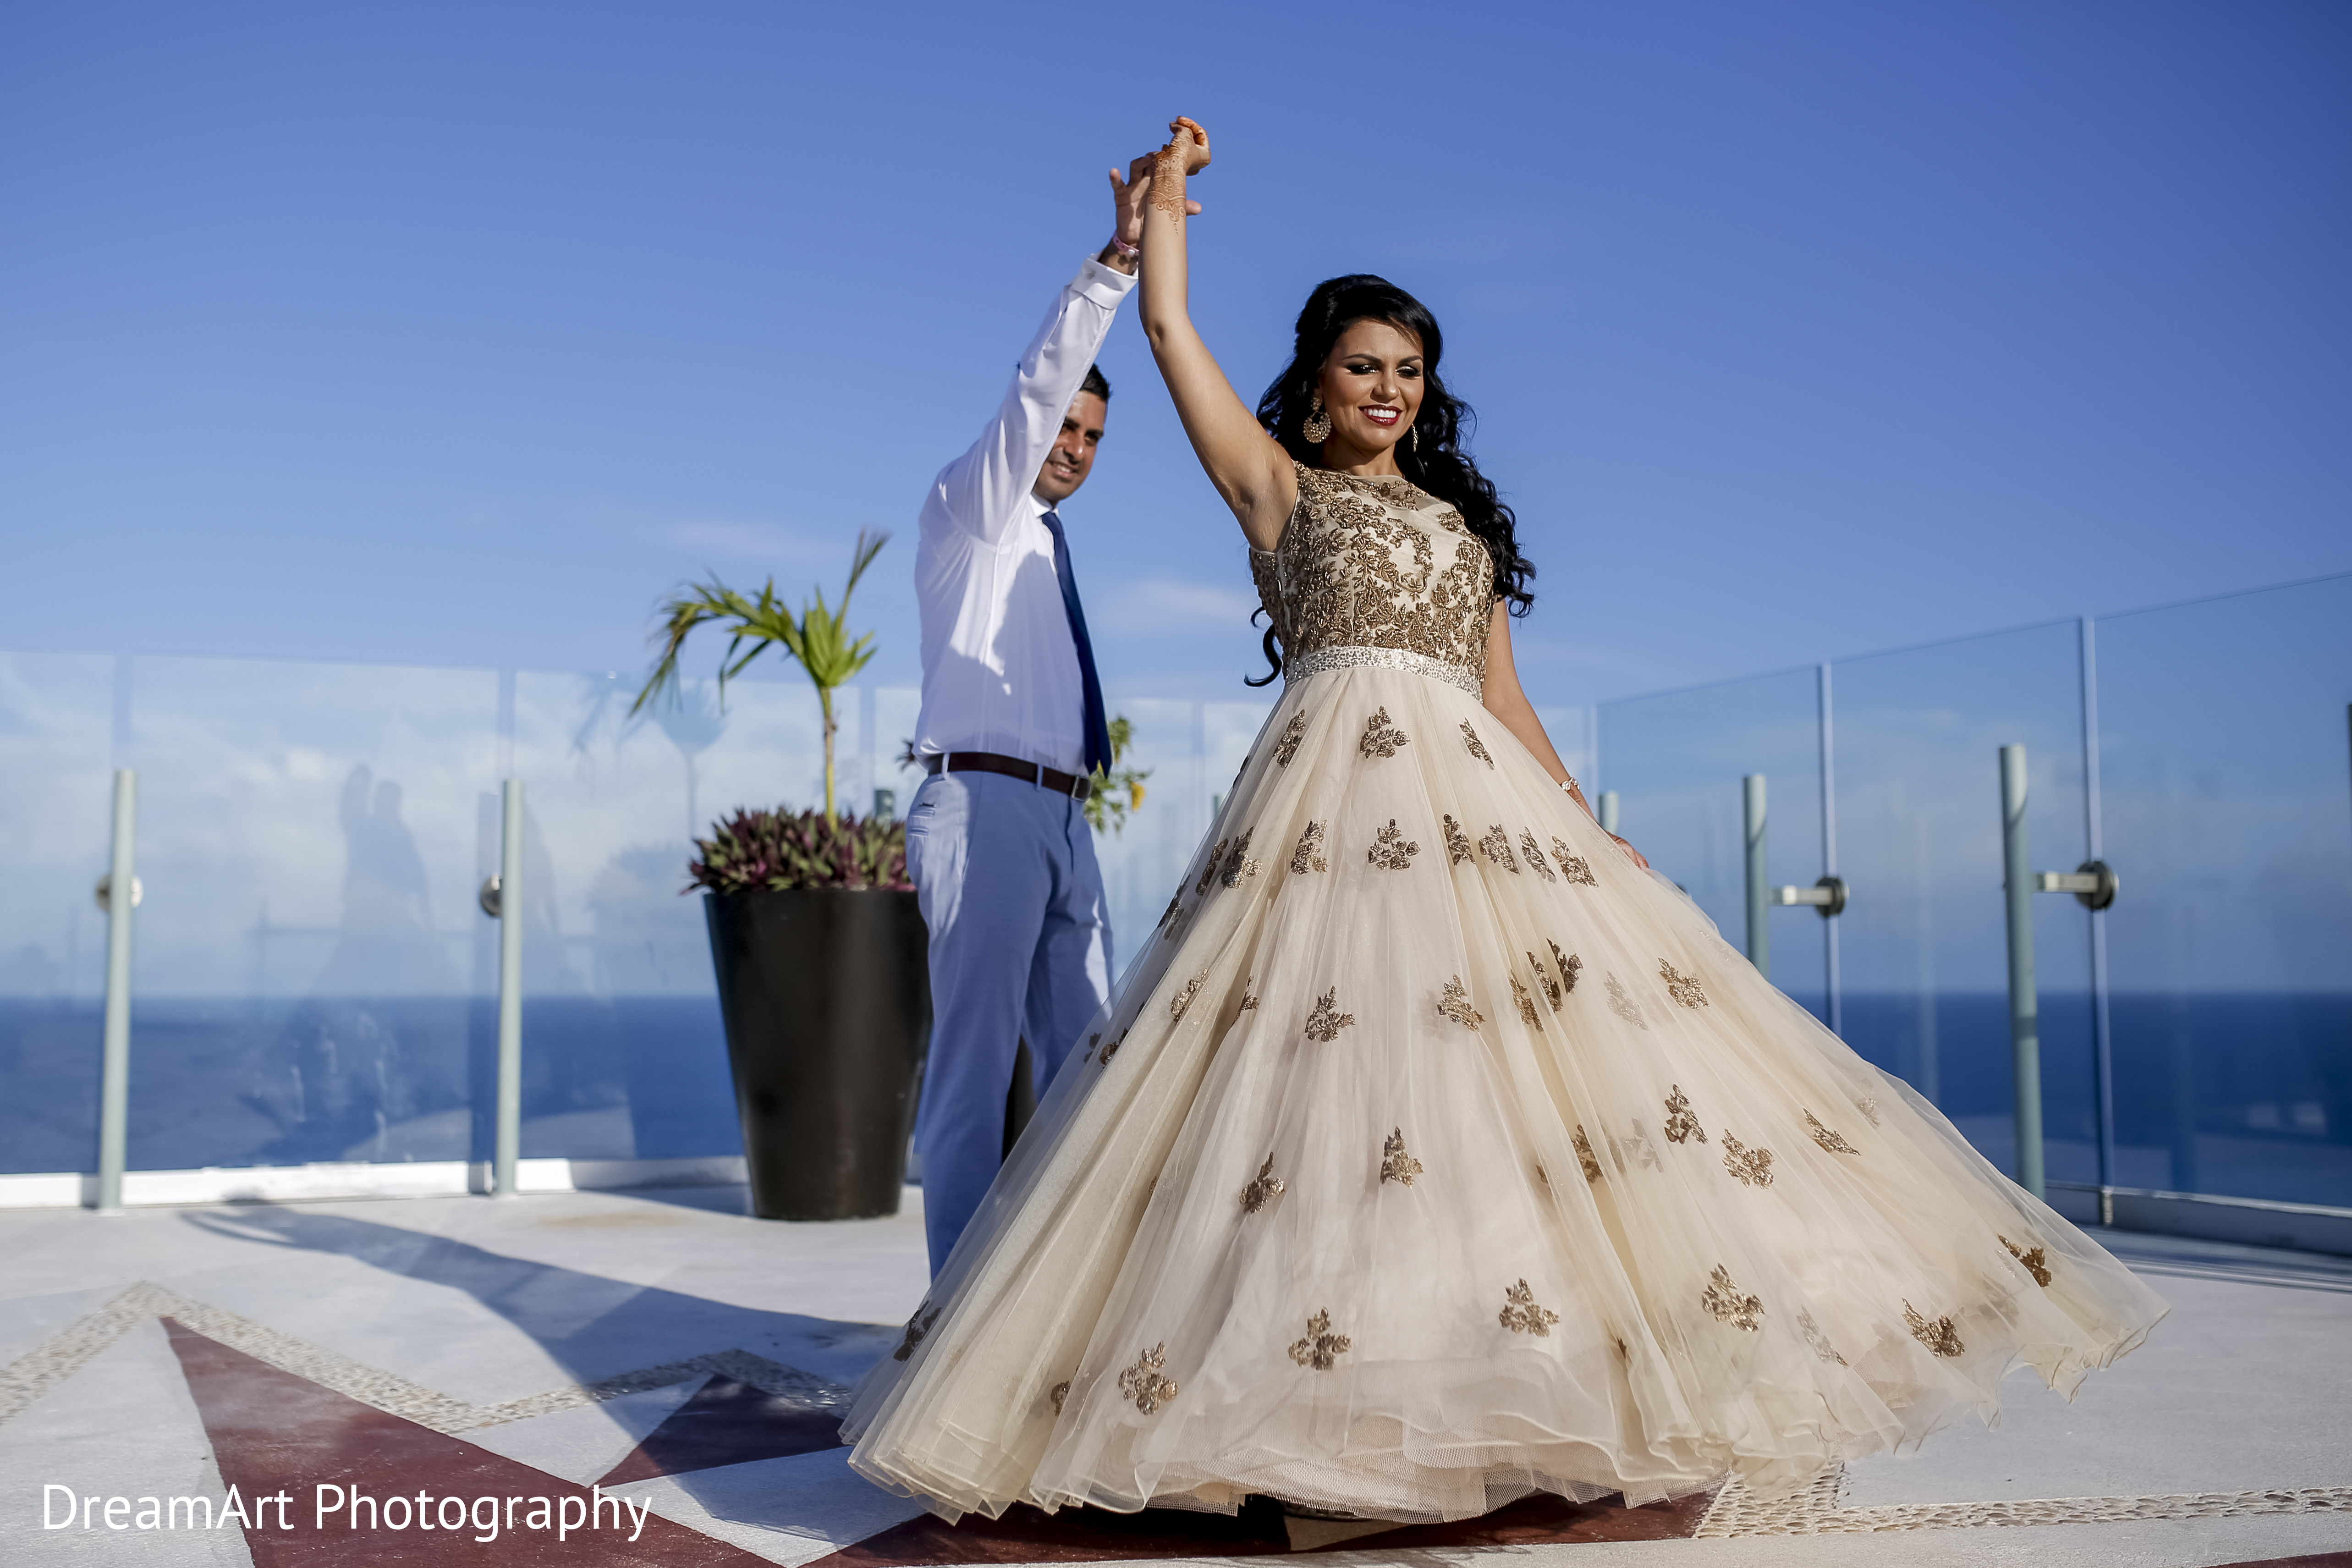 Cancun, MX Indian Wedding by DreamArt Photography